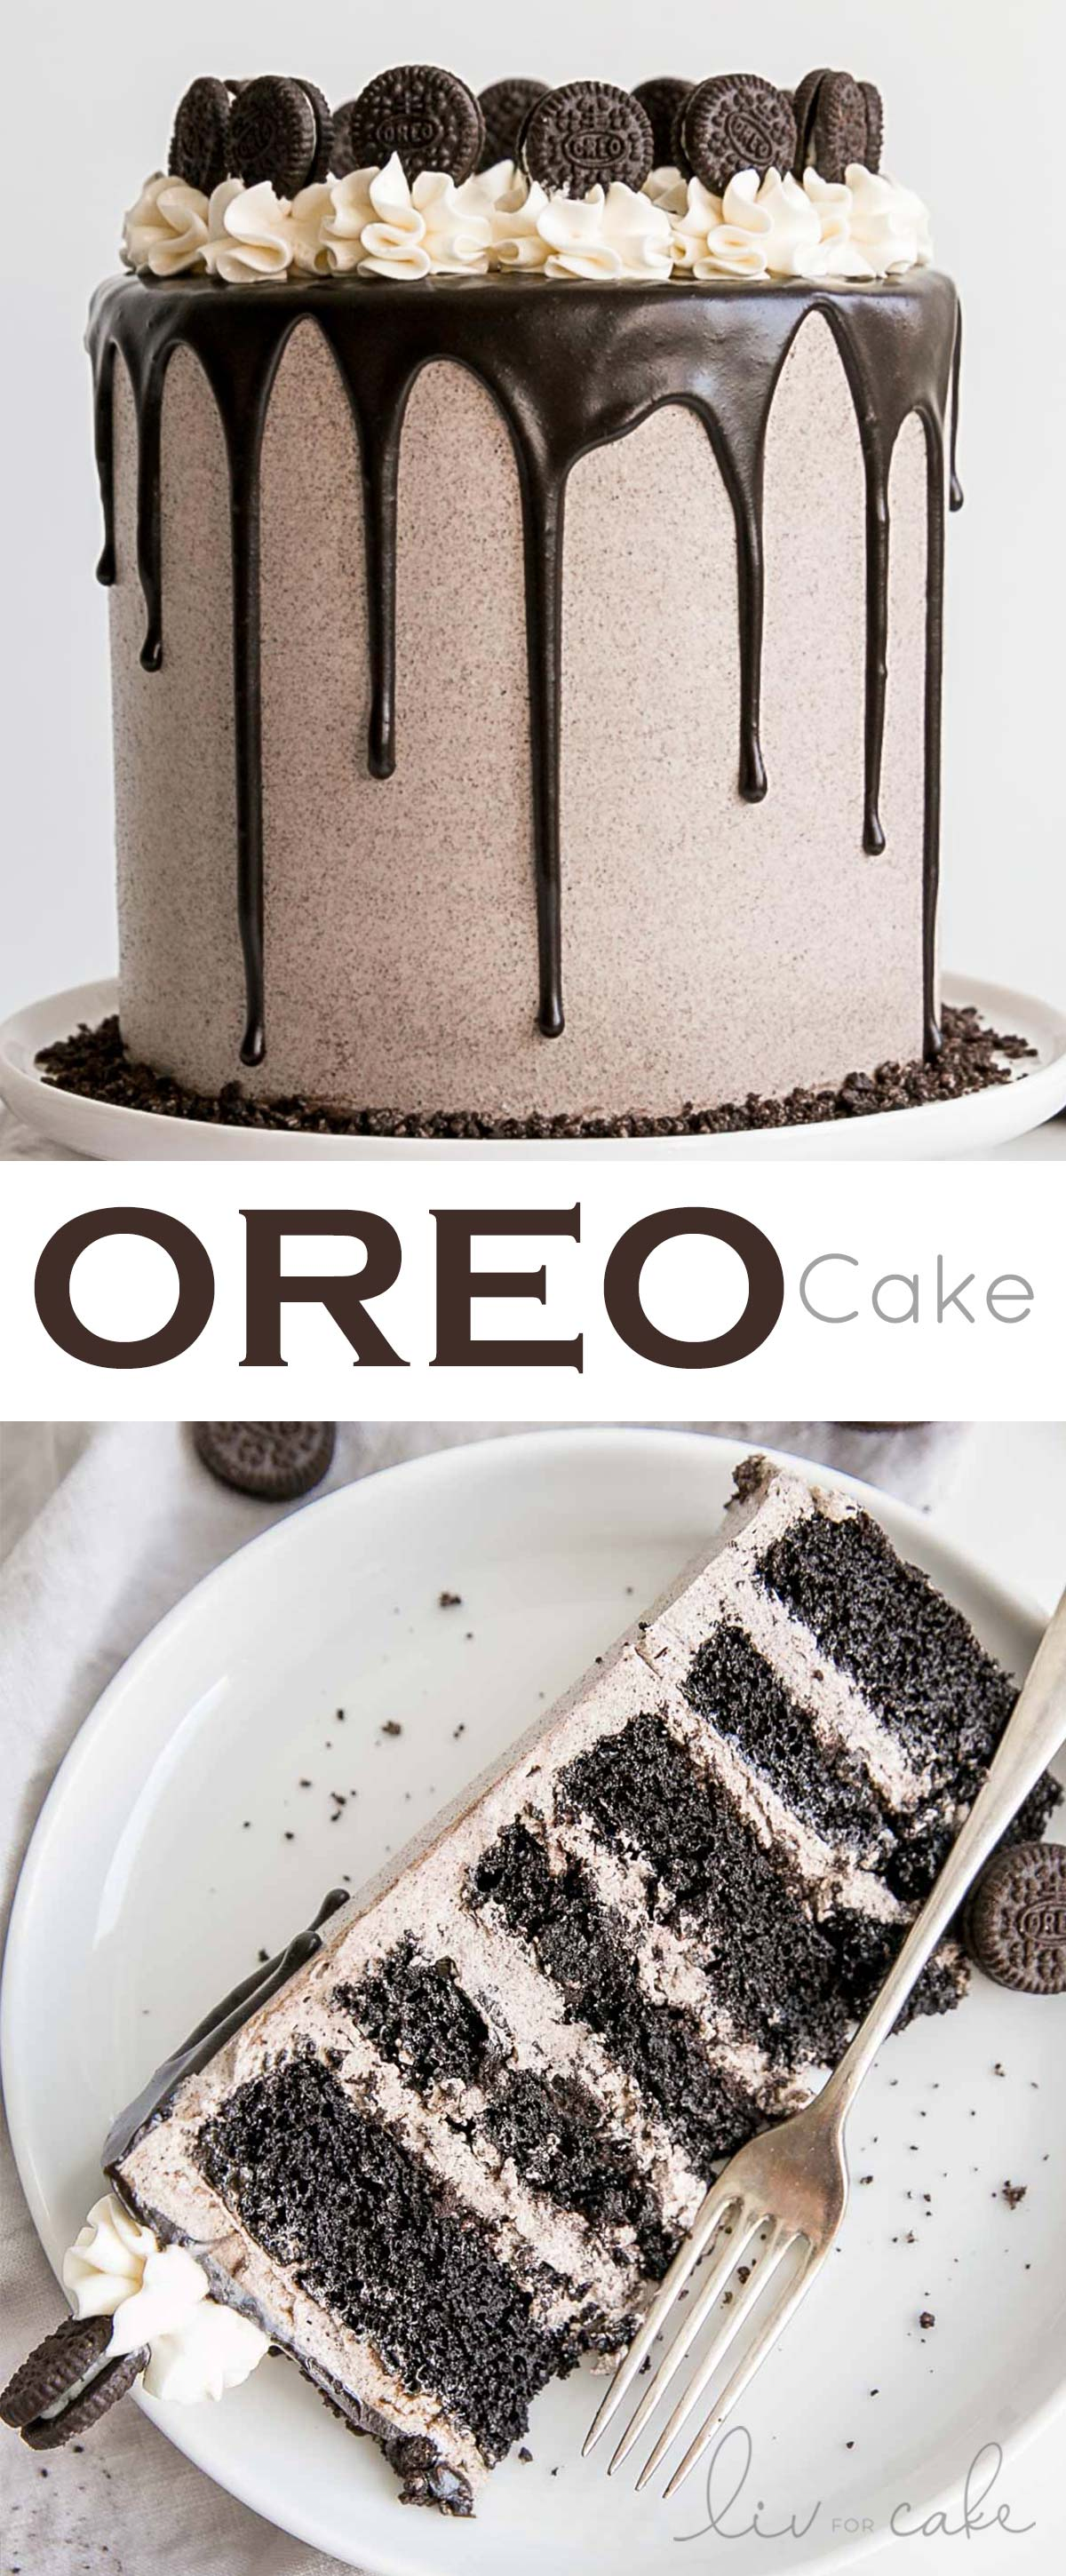 Oreo Cake! Six decadent layers of Oreo cake, Oreo buttercream, and a dark chocolate ganache. Perfect for the cookies and cream lover in your life! | livforcake.com